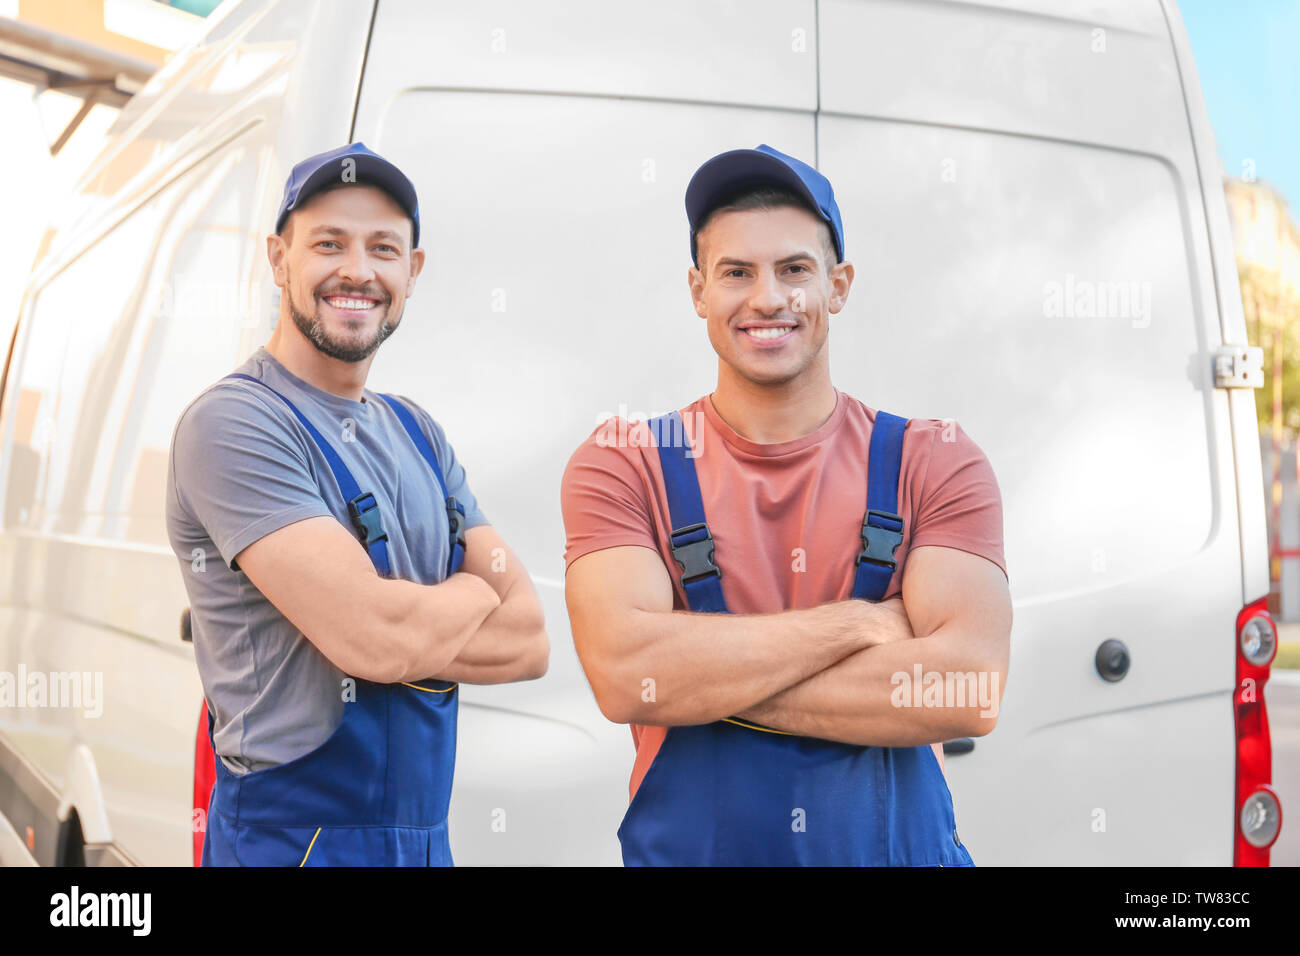 Delivery men standing near car - Stock Image